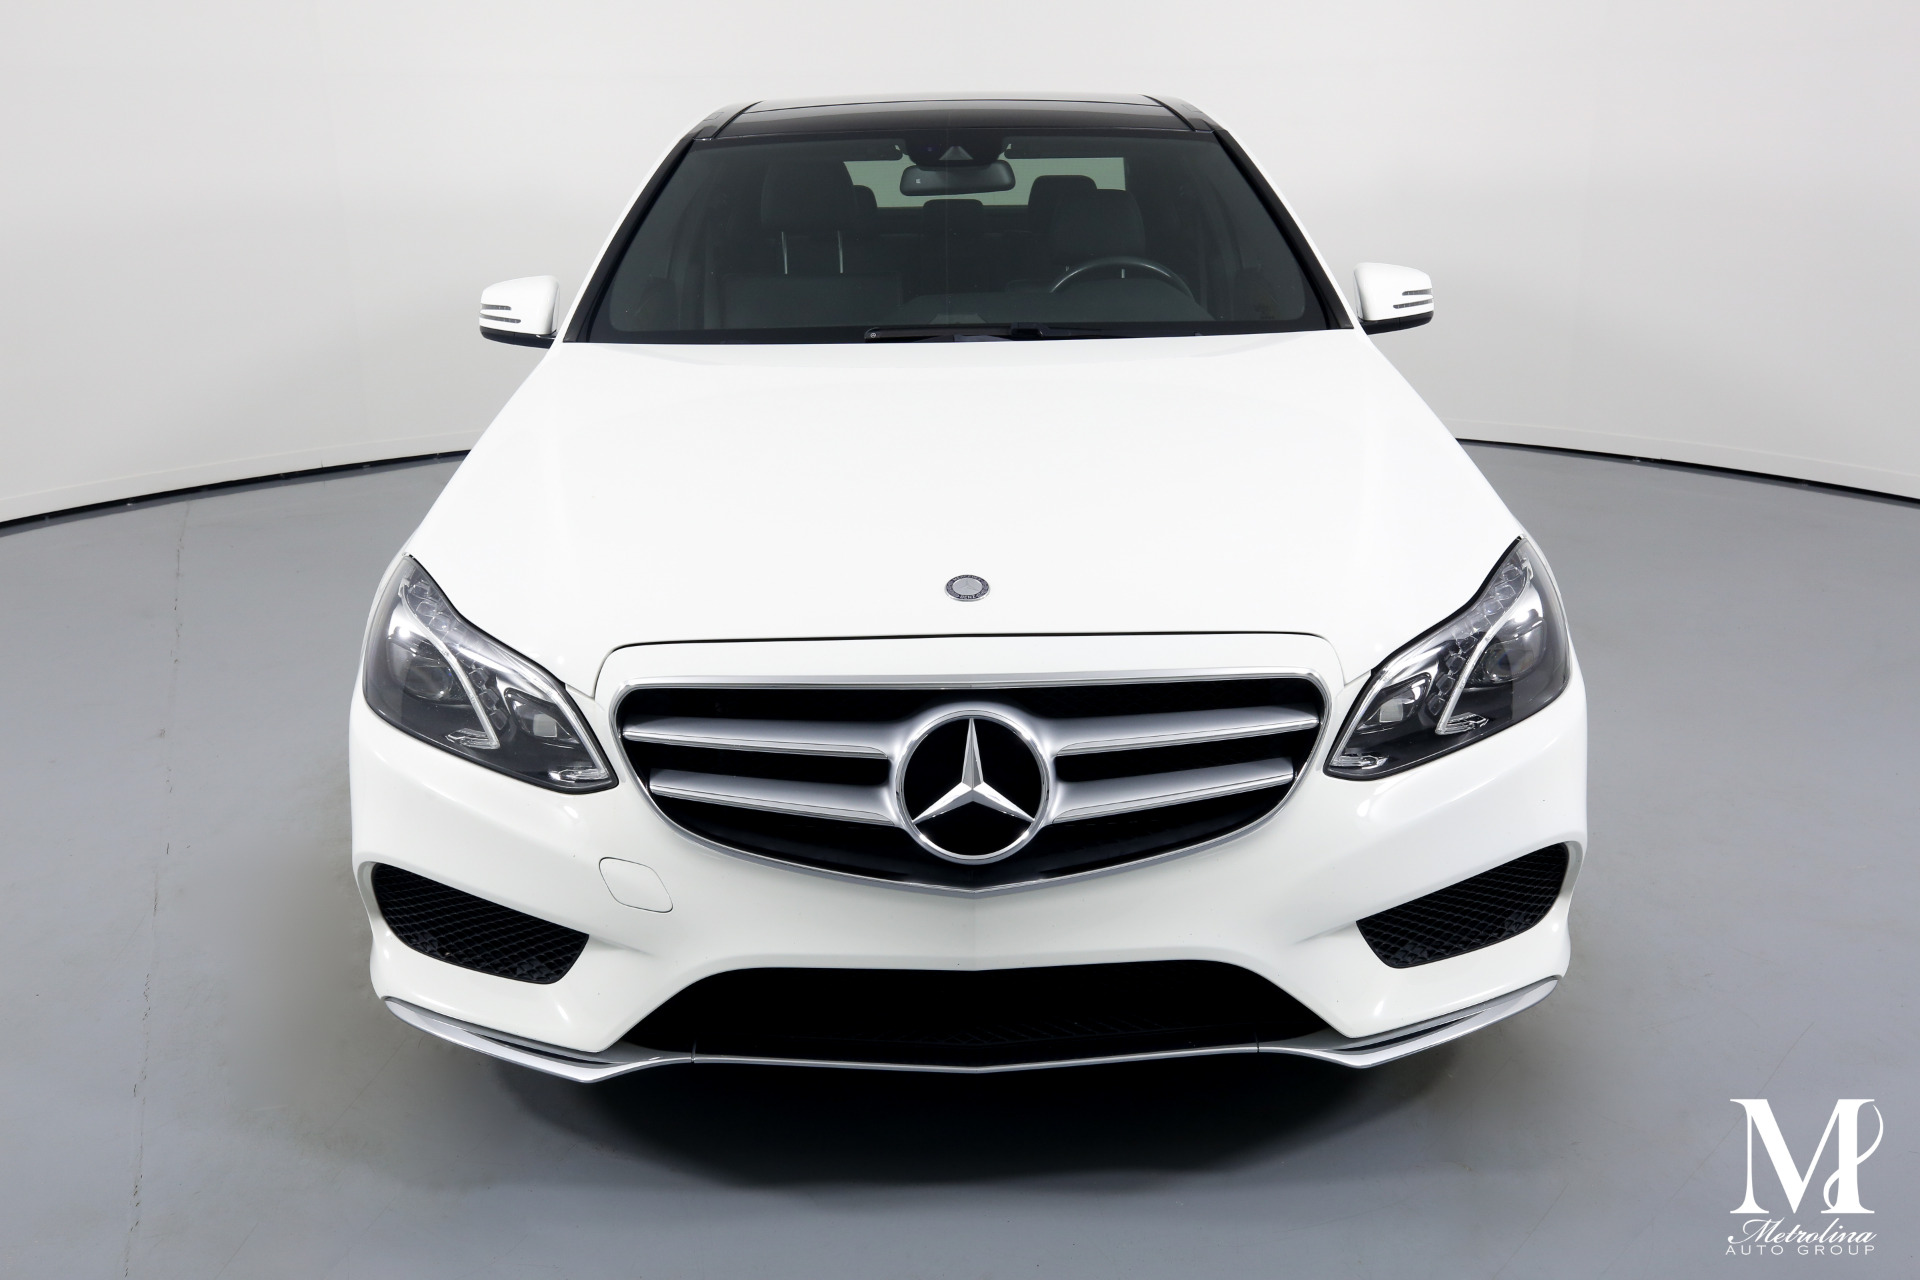 Used 2014 Mercedes-Benz E-Class E 350 Sport 4MATIC for sale $17,996 at Metrolina Auto Group in Charlotte NC 28217 - 3